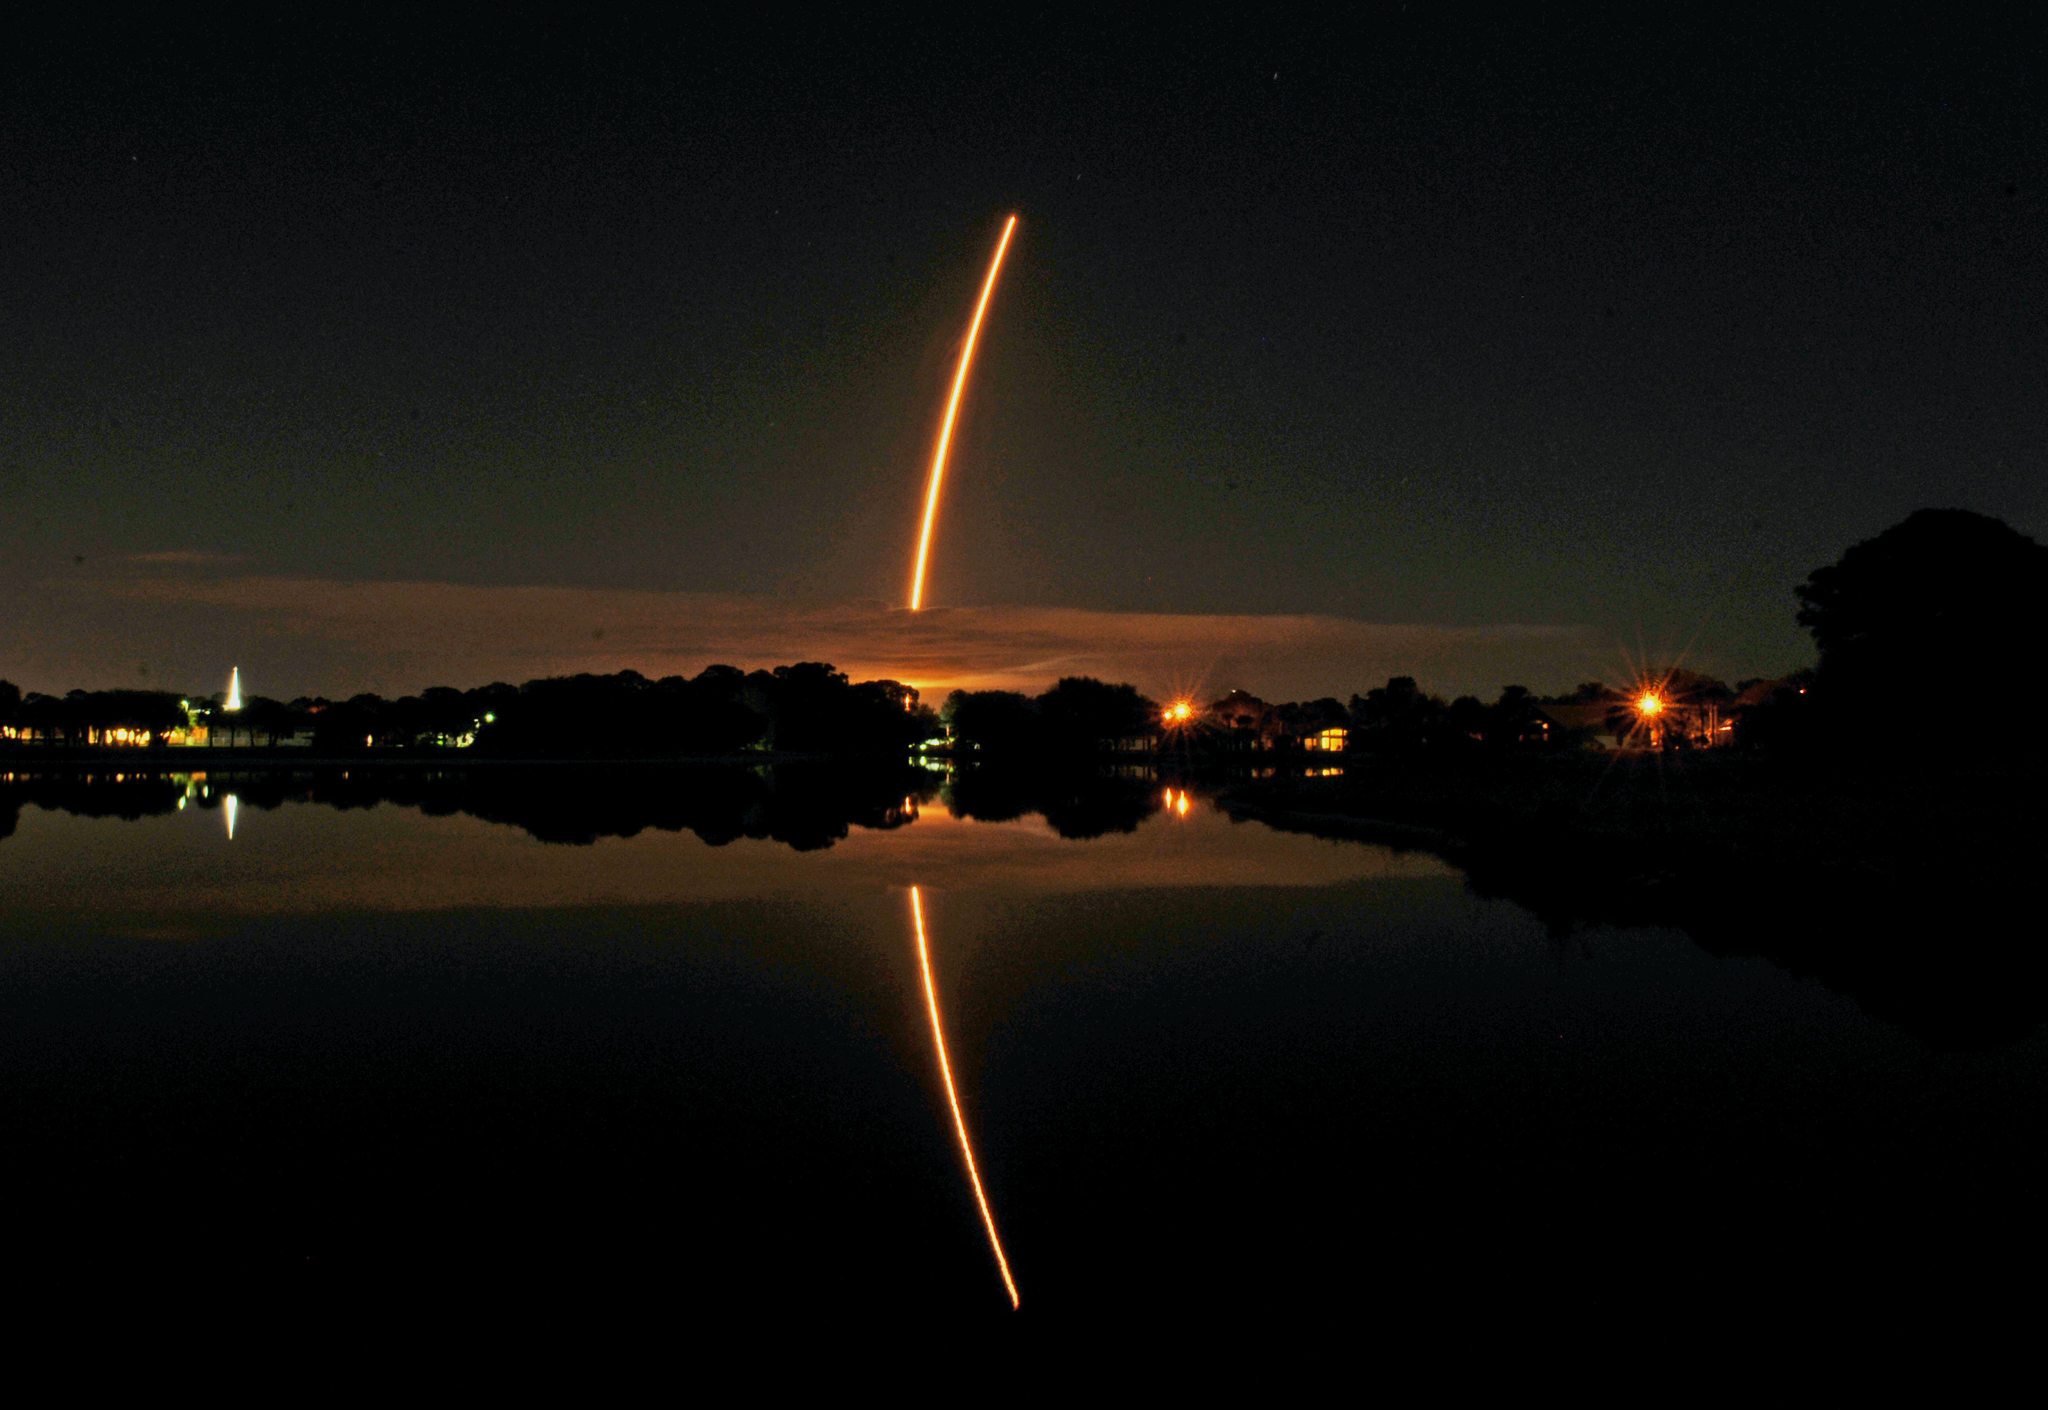 An Orbital ATK's Cygnus space craft atop a United Launch Alliance Atlas V rocket launchs from Cape Canaveral Air Force Station to go to the International Space Station as seen from Viera in Brevard County, Fla., Tuesday, March 22, 2016. (Tim Shortt/Florida Today via AP)  NO SALES; MANDATORY CREDIT